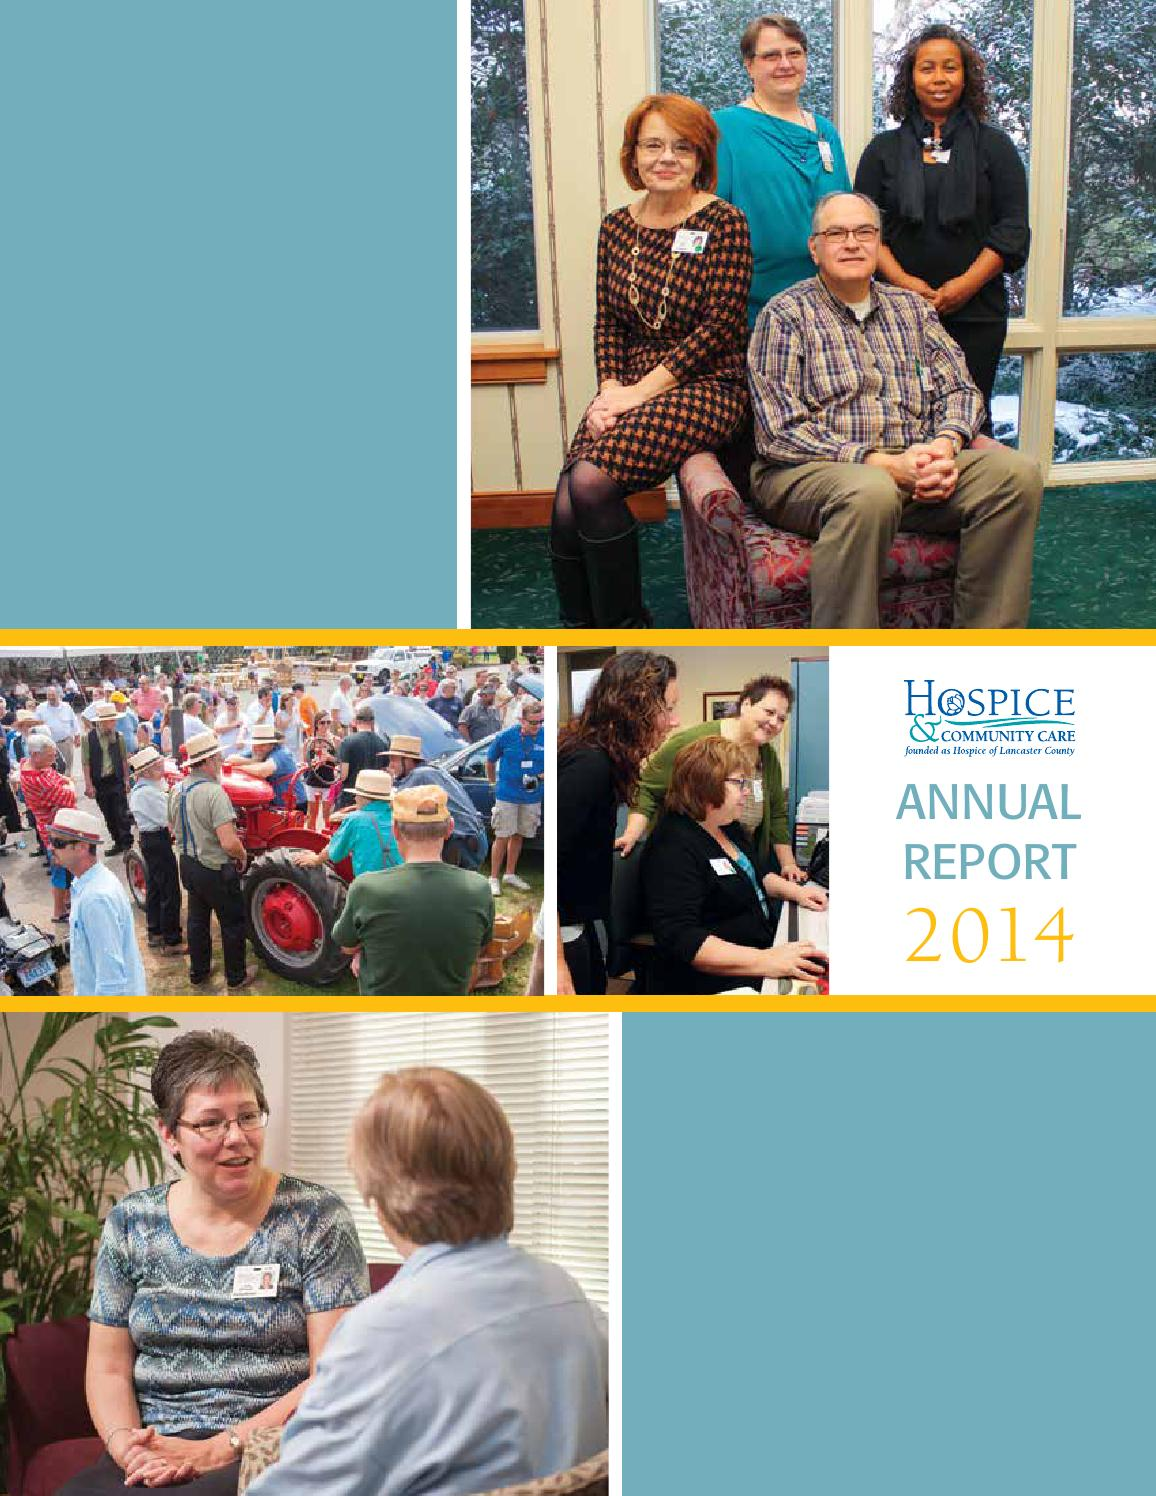 hcc annualreport by hospice community care issuu